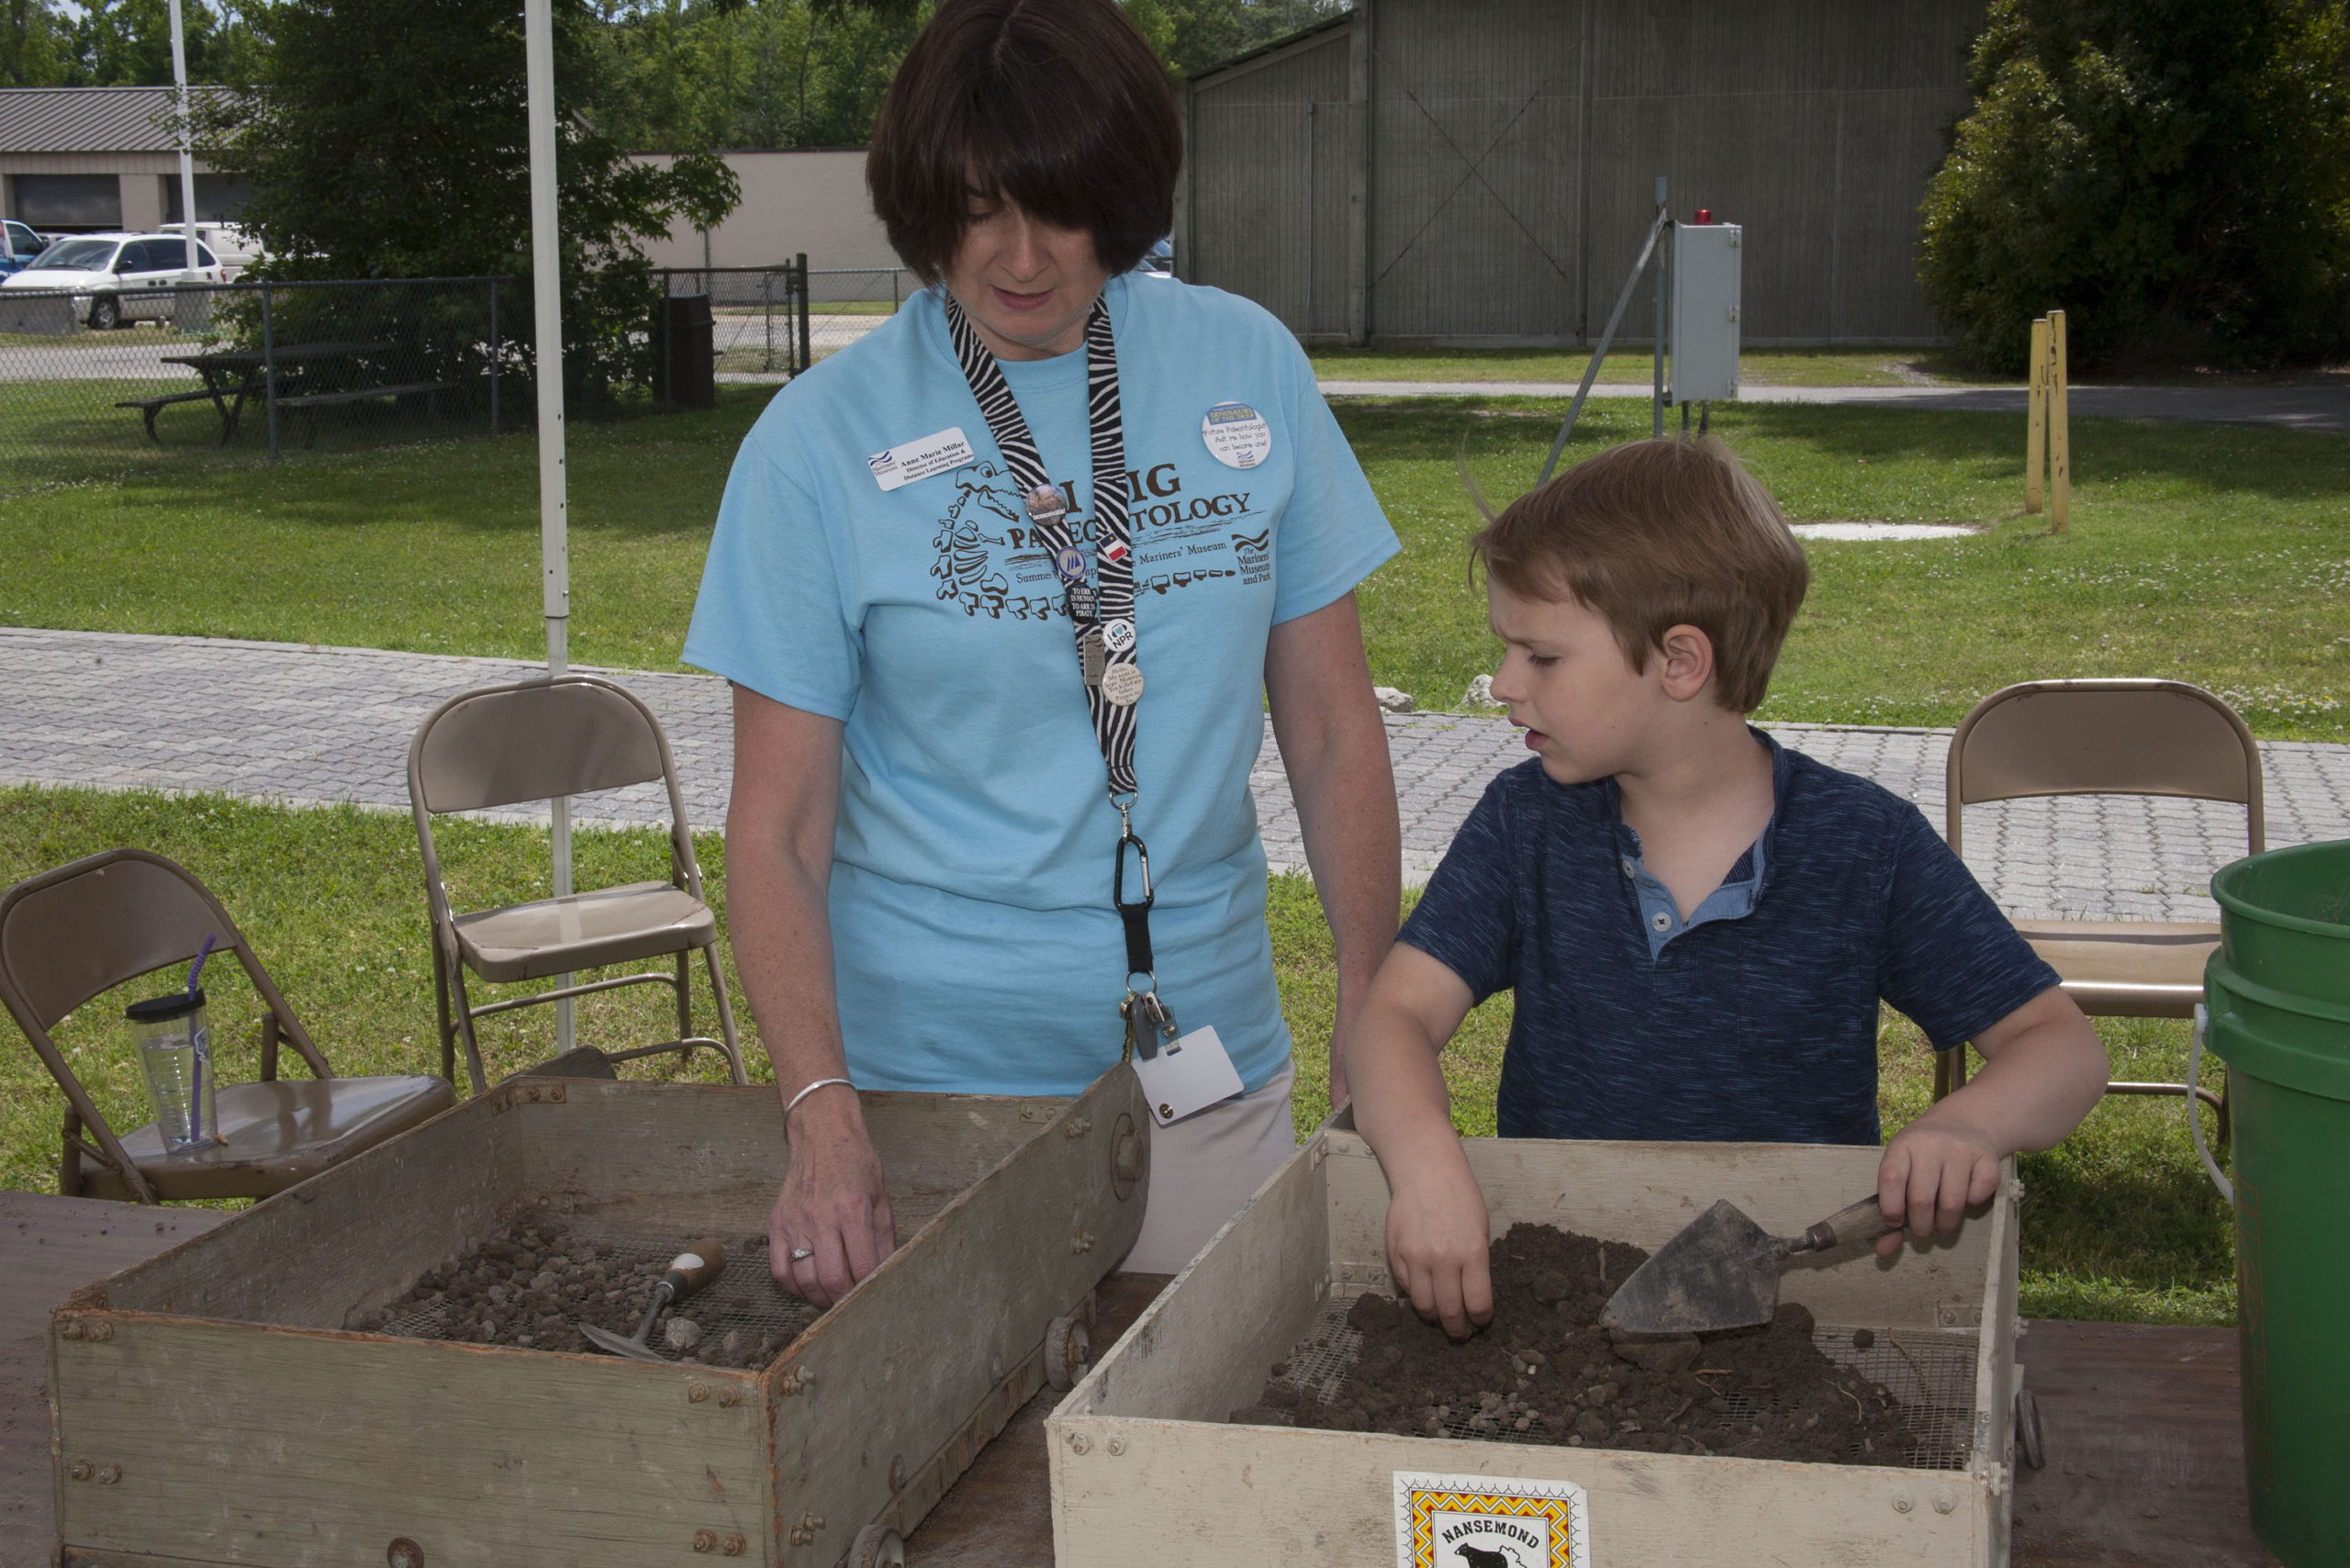 Search for evidence in our Paleontology Tent